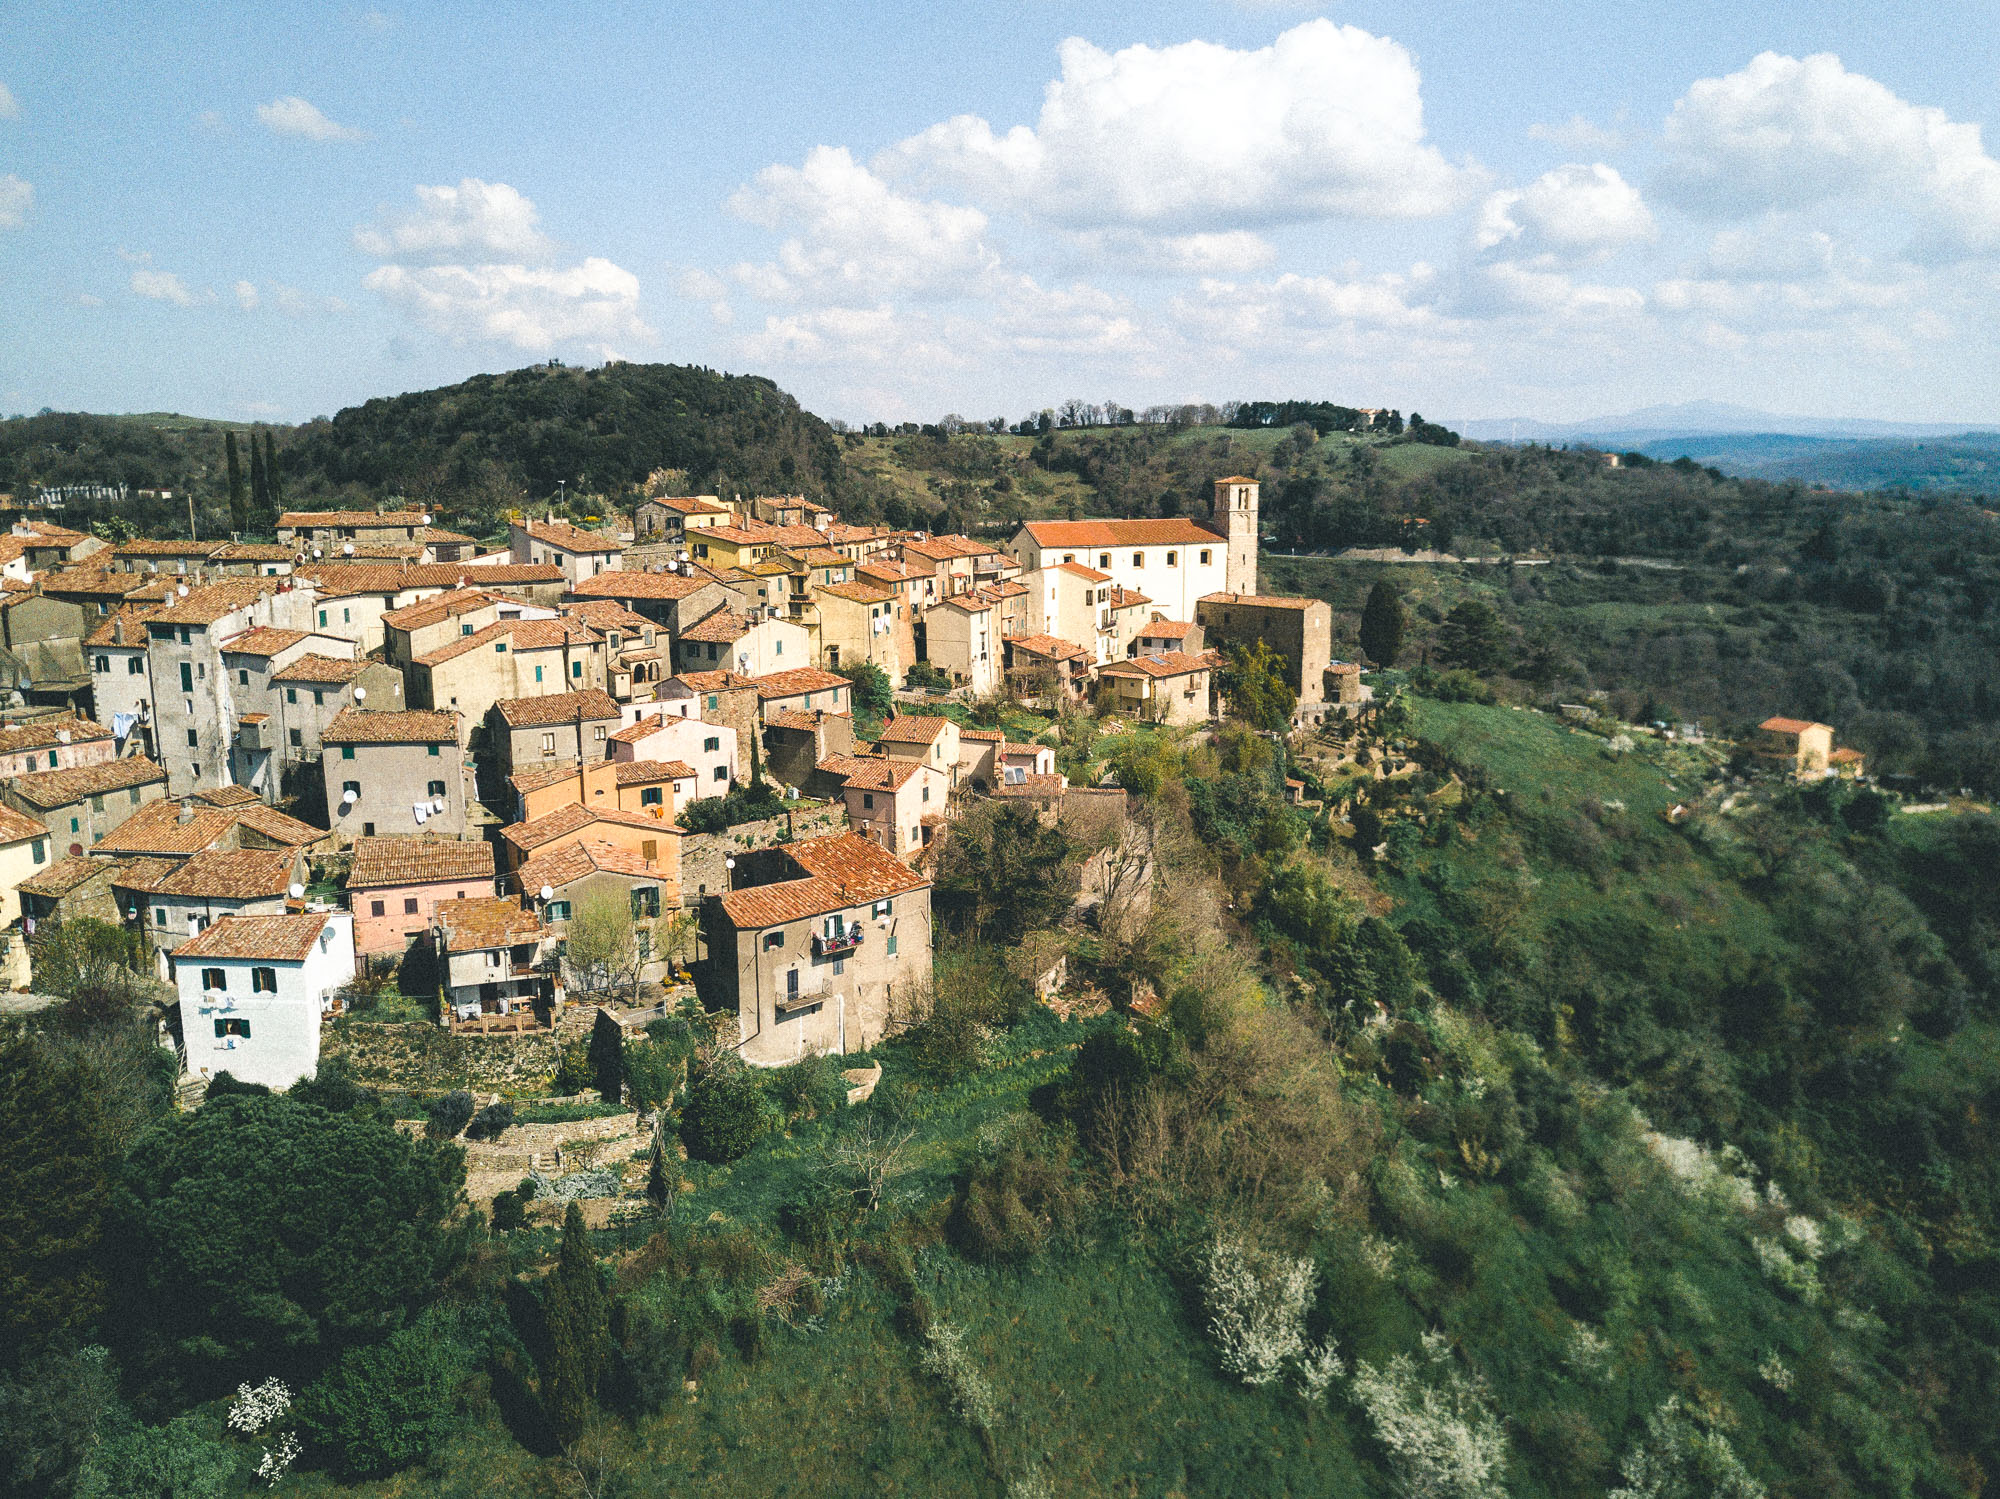 The quaint old town of Scansano in Southern Tuscany, Italy